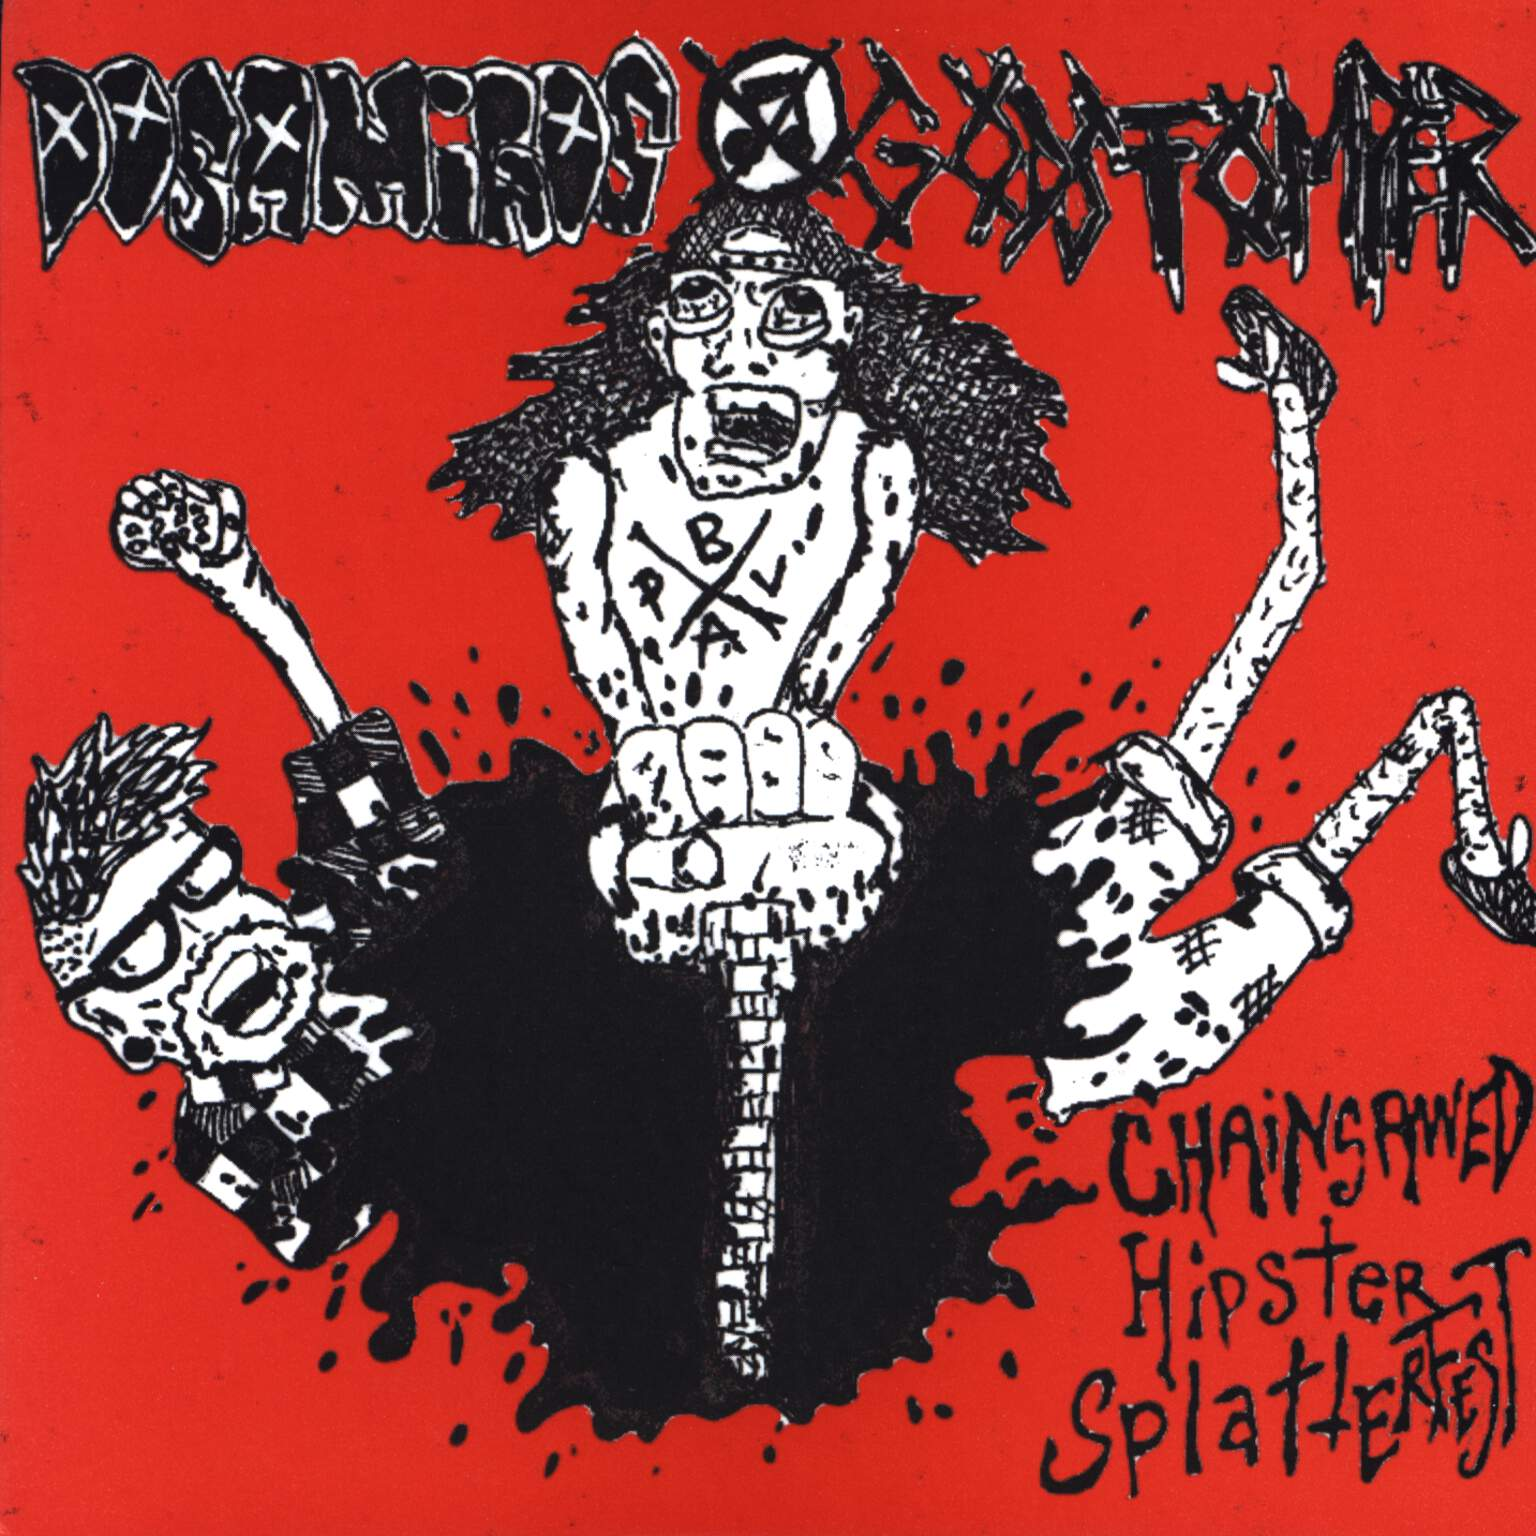 "Godstomper: Chainsawed Hipster Splatterfest, 7"" Single (Vinyl)"